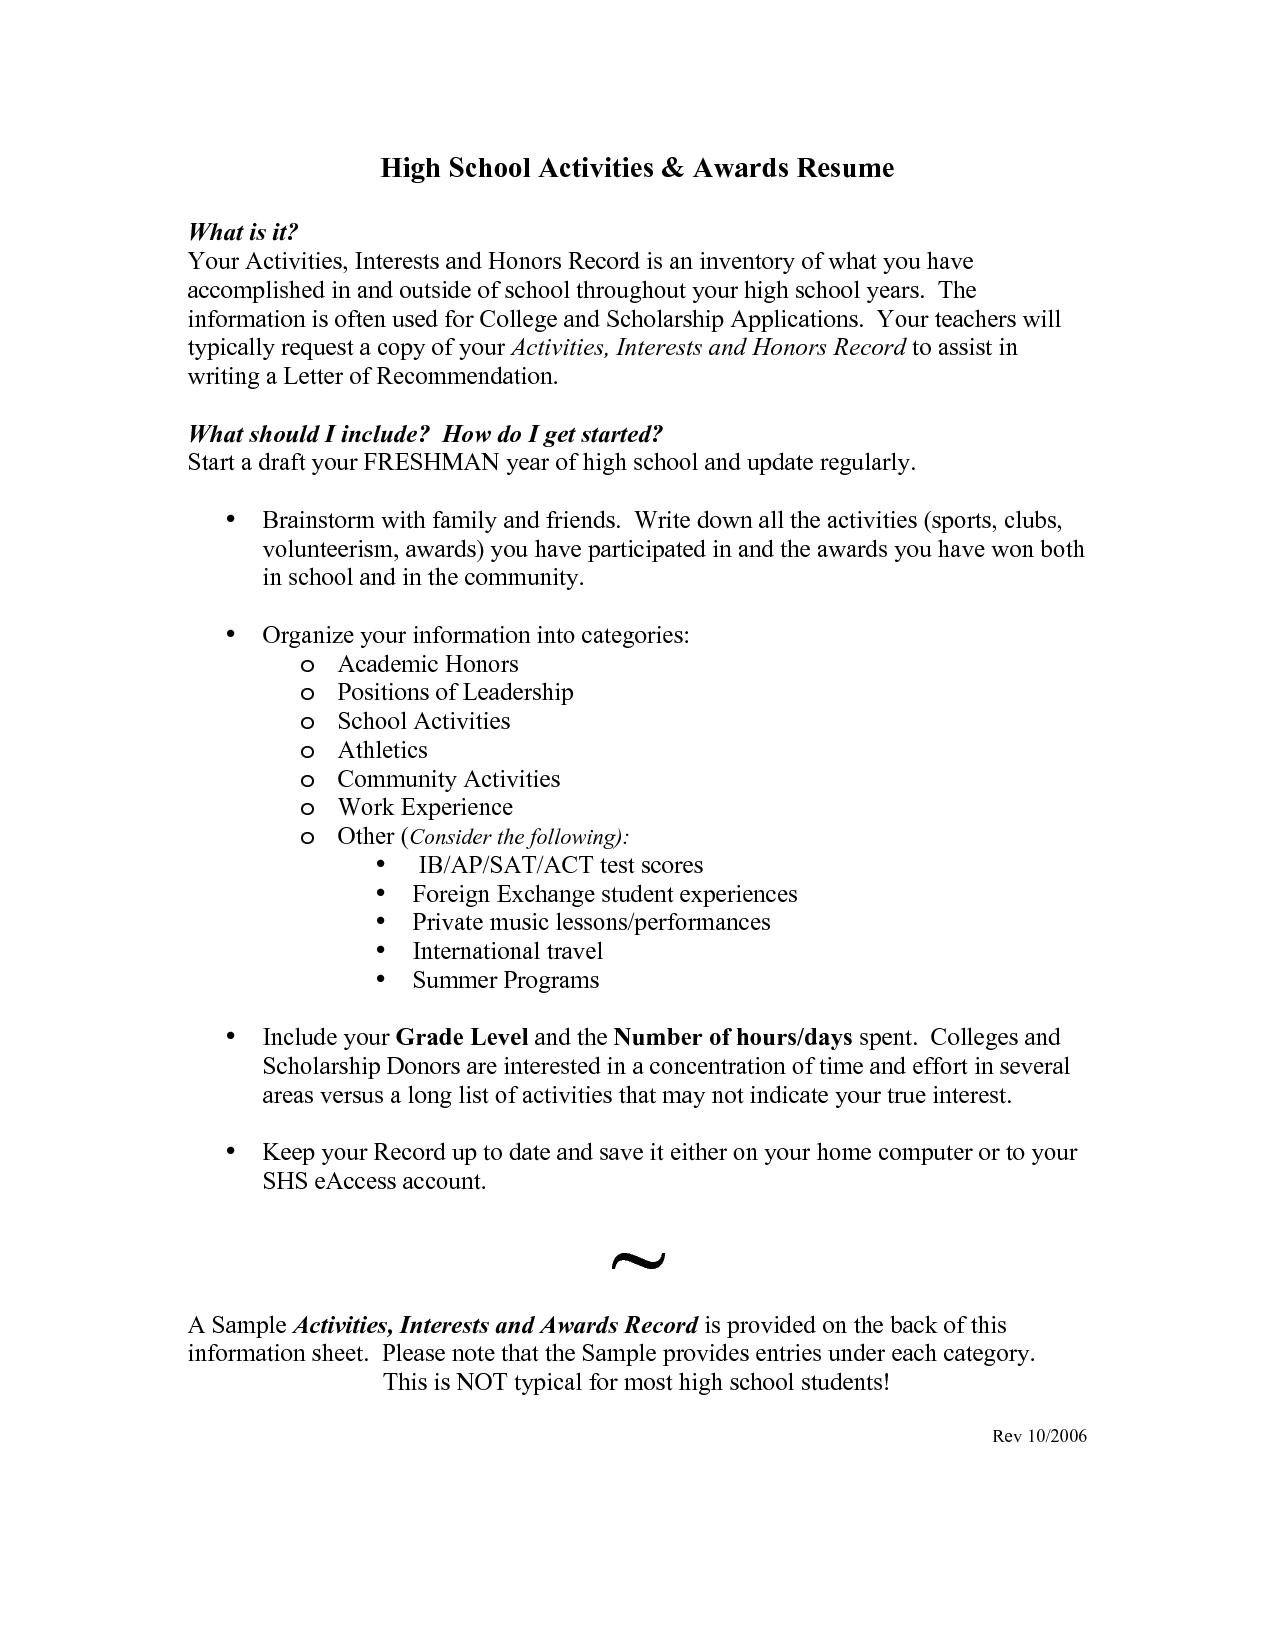 Example Resume For High School Student For College Applications. ...